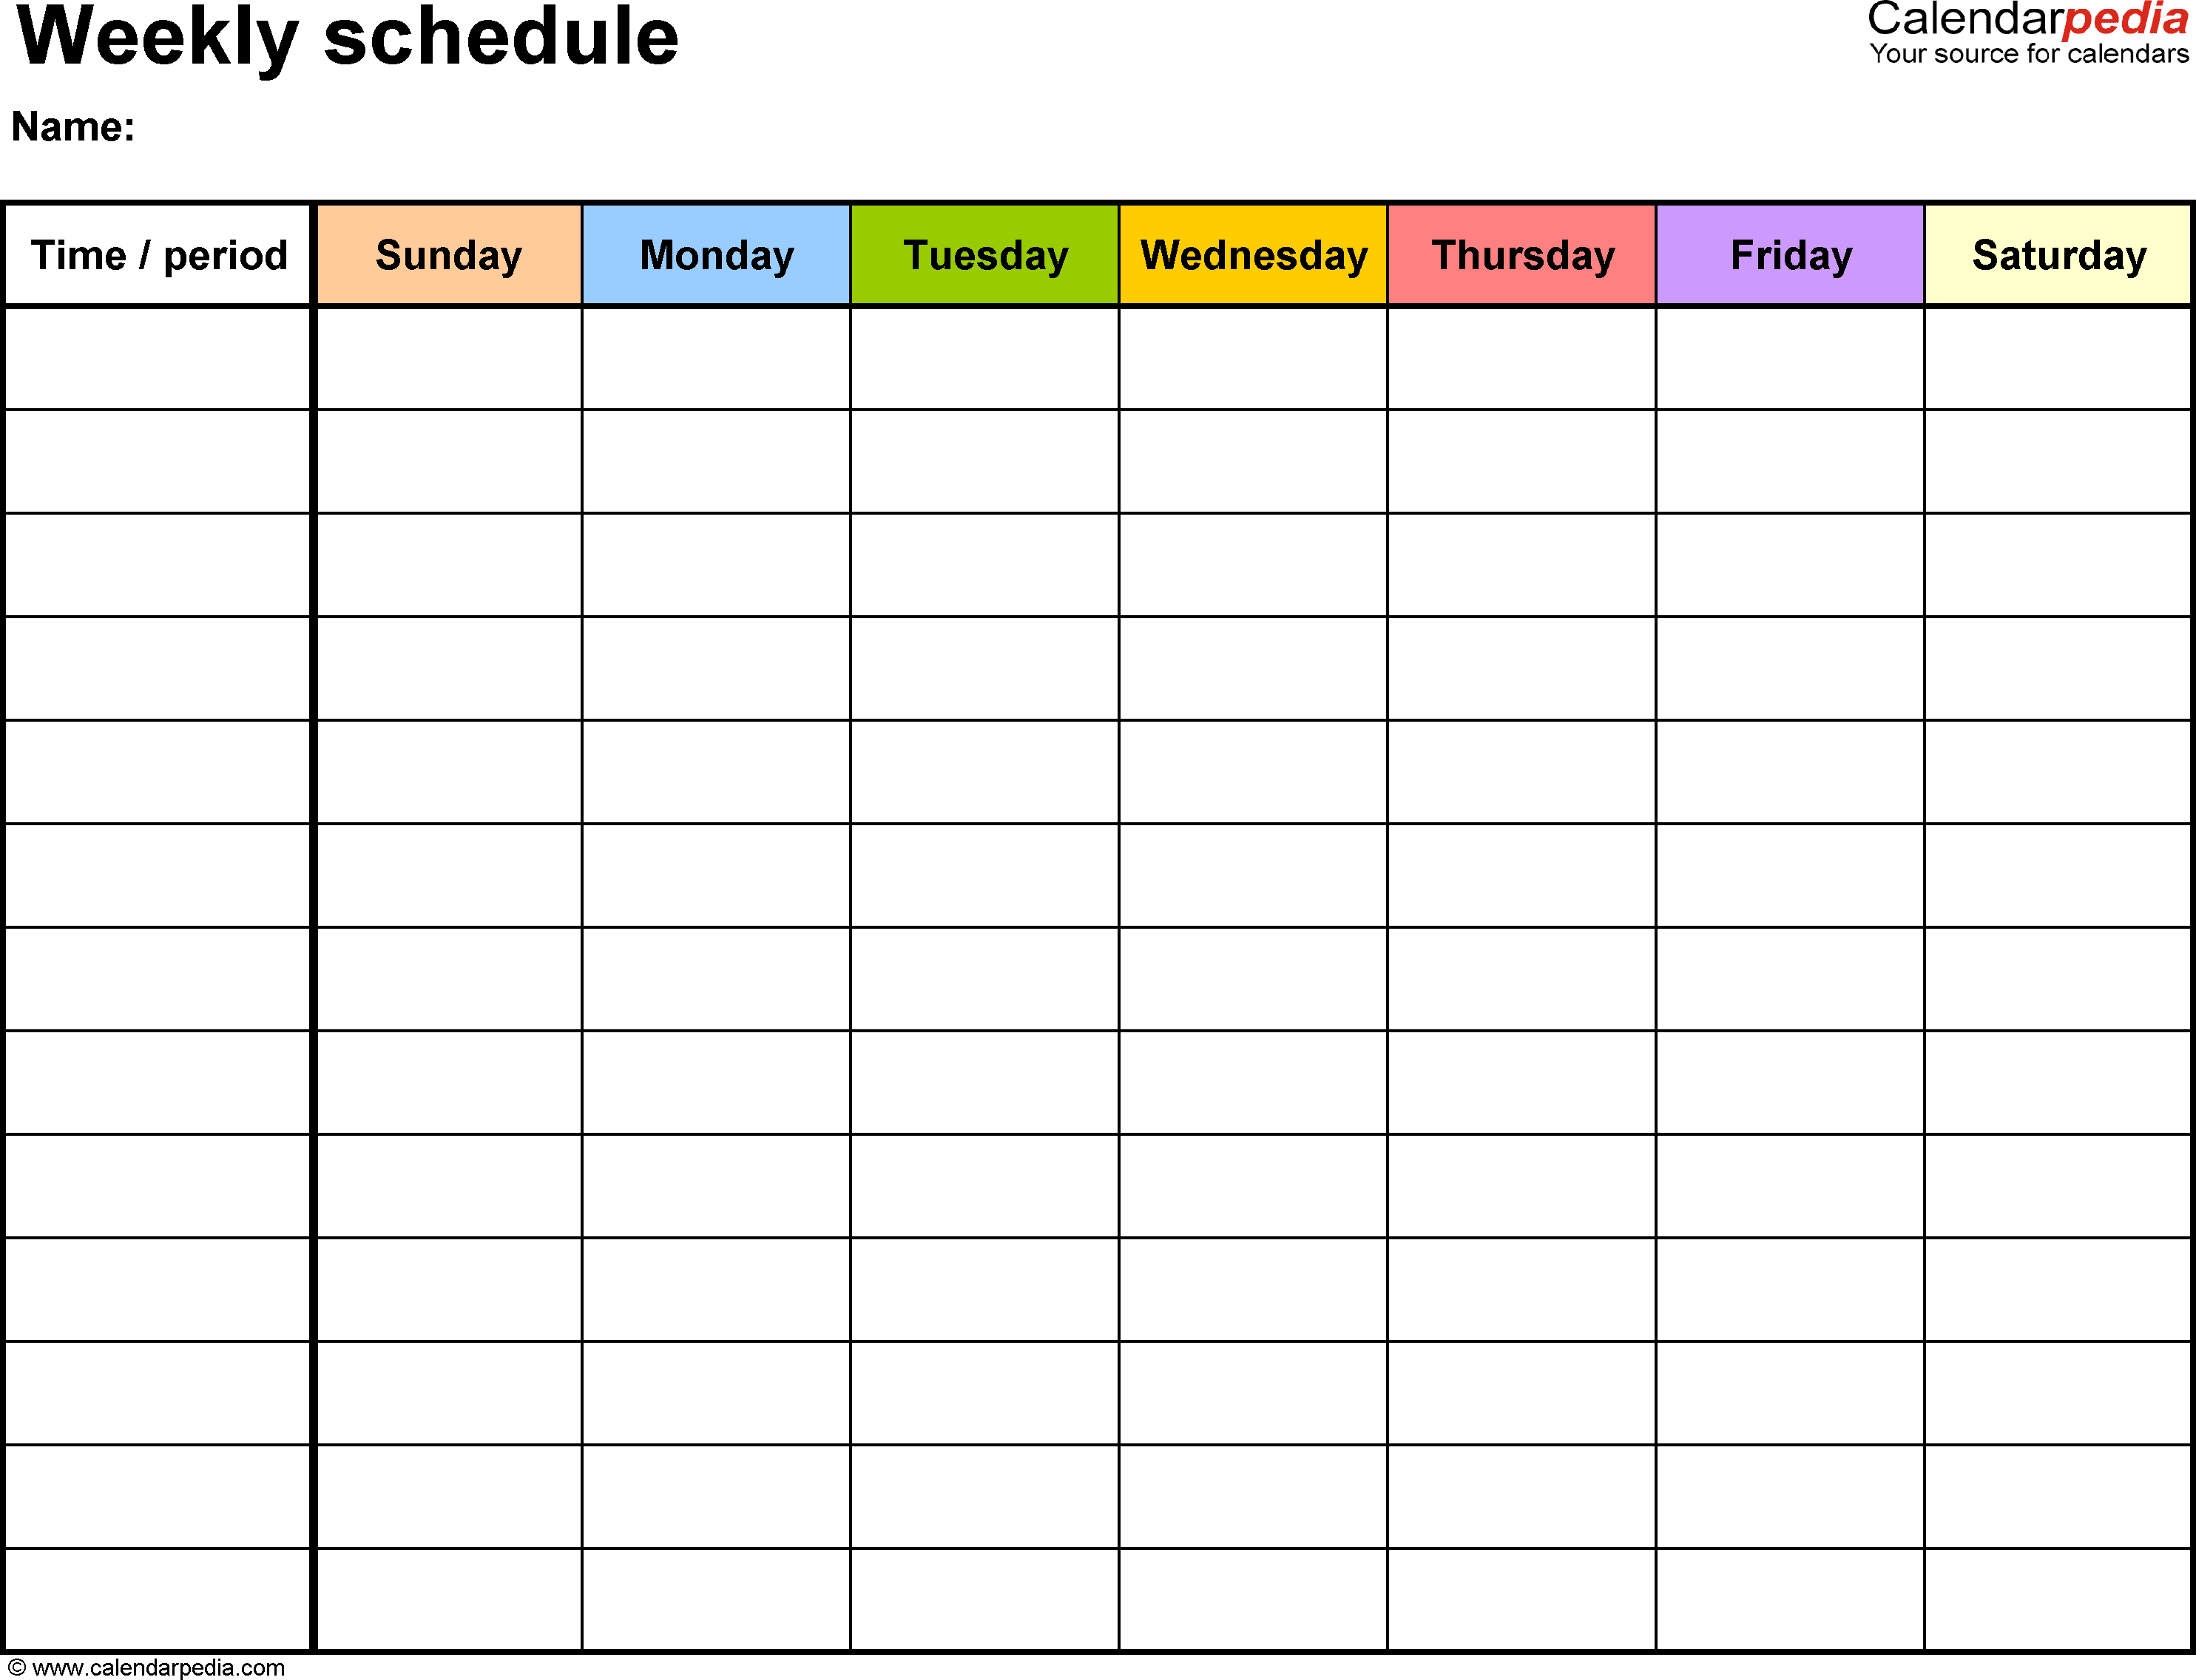 Free Weekly Schedule Templates For Word - 18 Templates for 7 Day Calendar Template Fillable